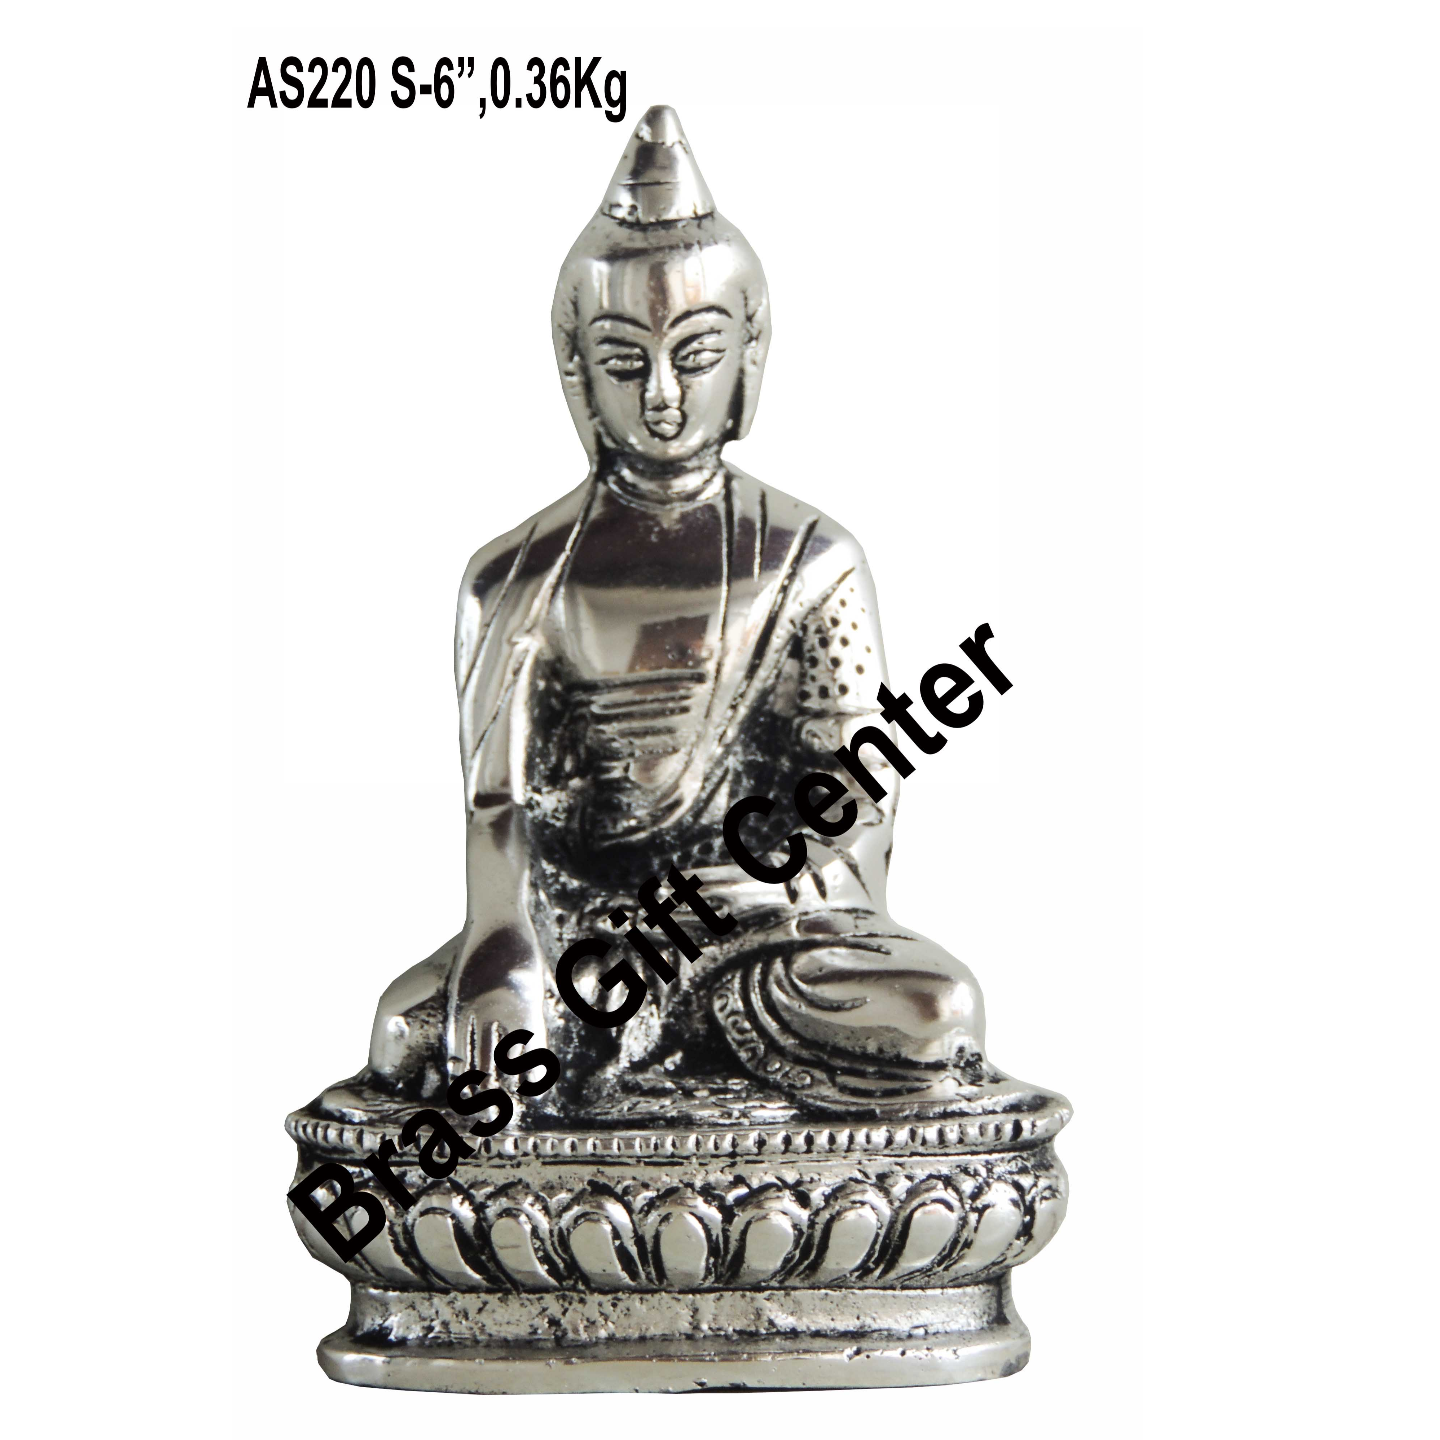 Aluminium Buddha Statue Murti Idol Silver Antique finish - 3.52.66 Inch AS220 S